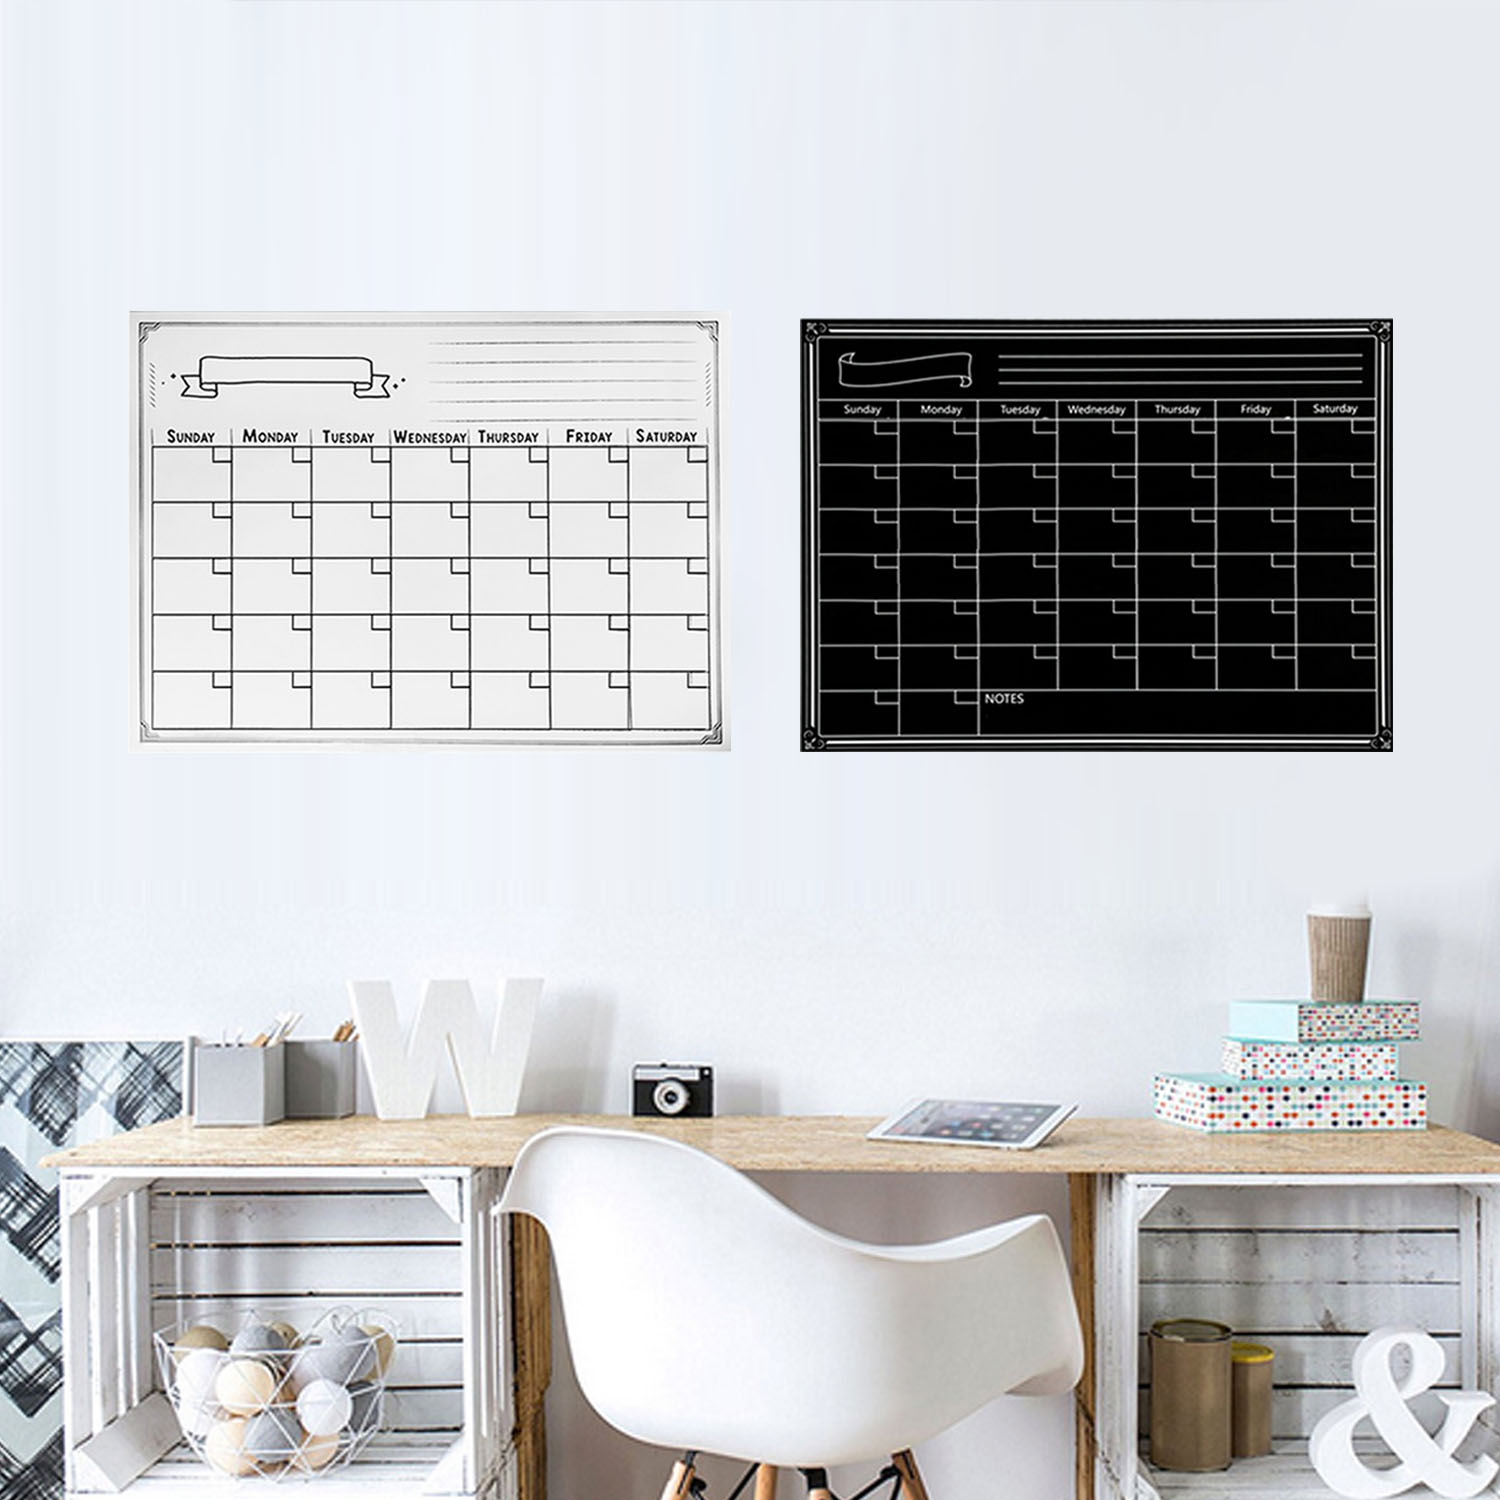 Reusable Magnetic Dry Erase Refrigerator Calendar Monthly Planner Whiteboard Board With Pen Eraser For Home Office 40x30cm